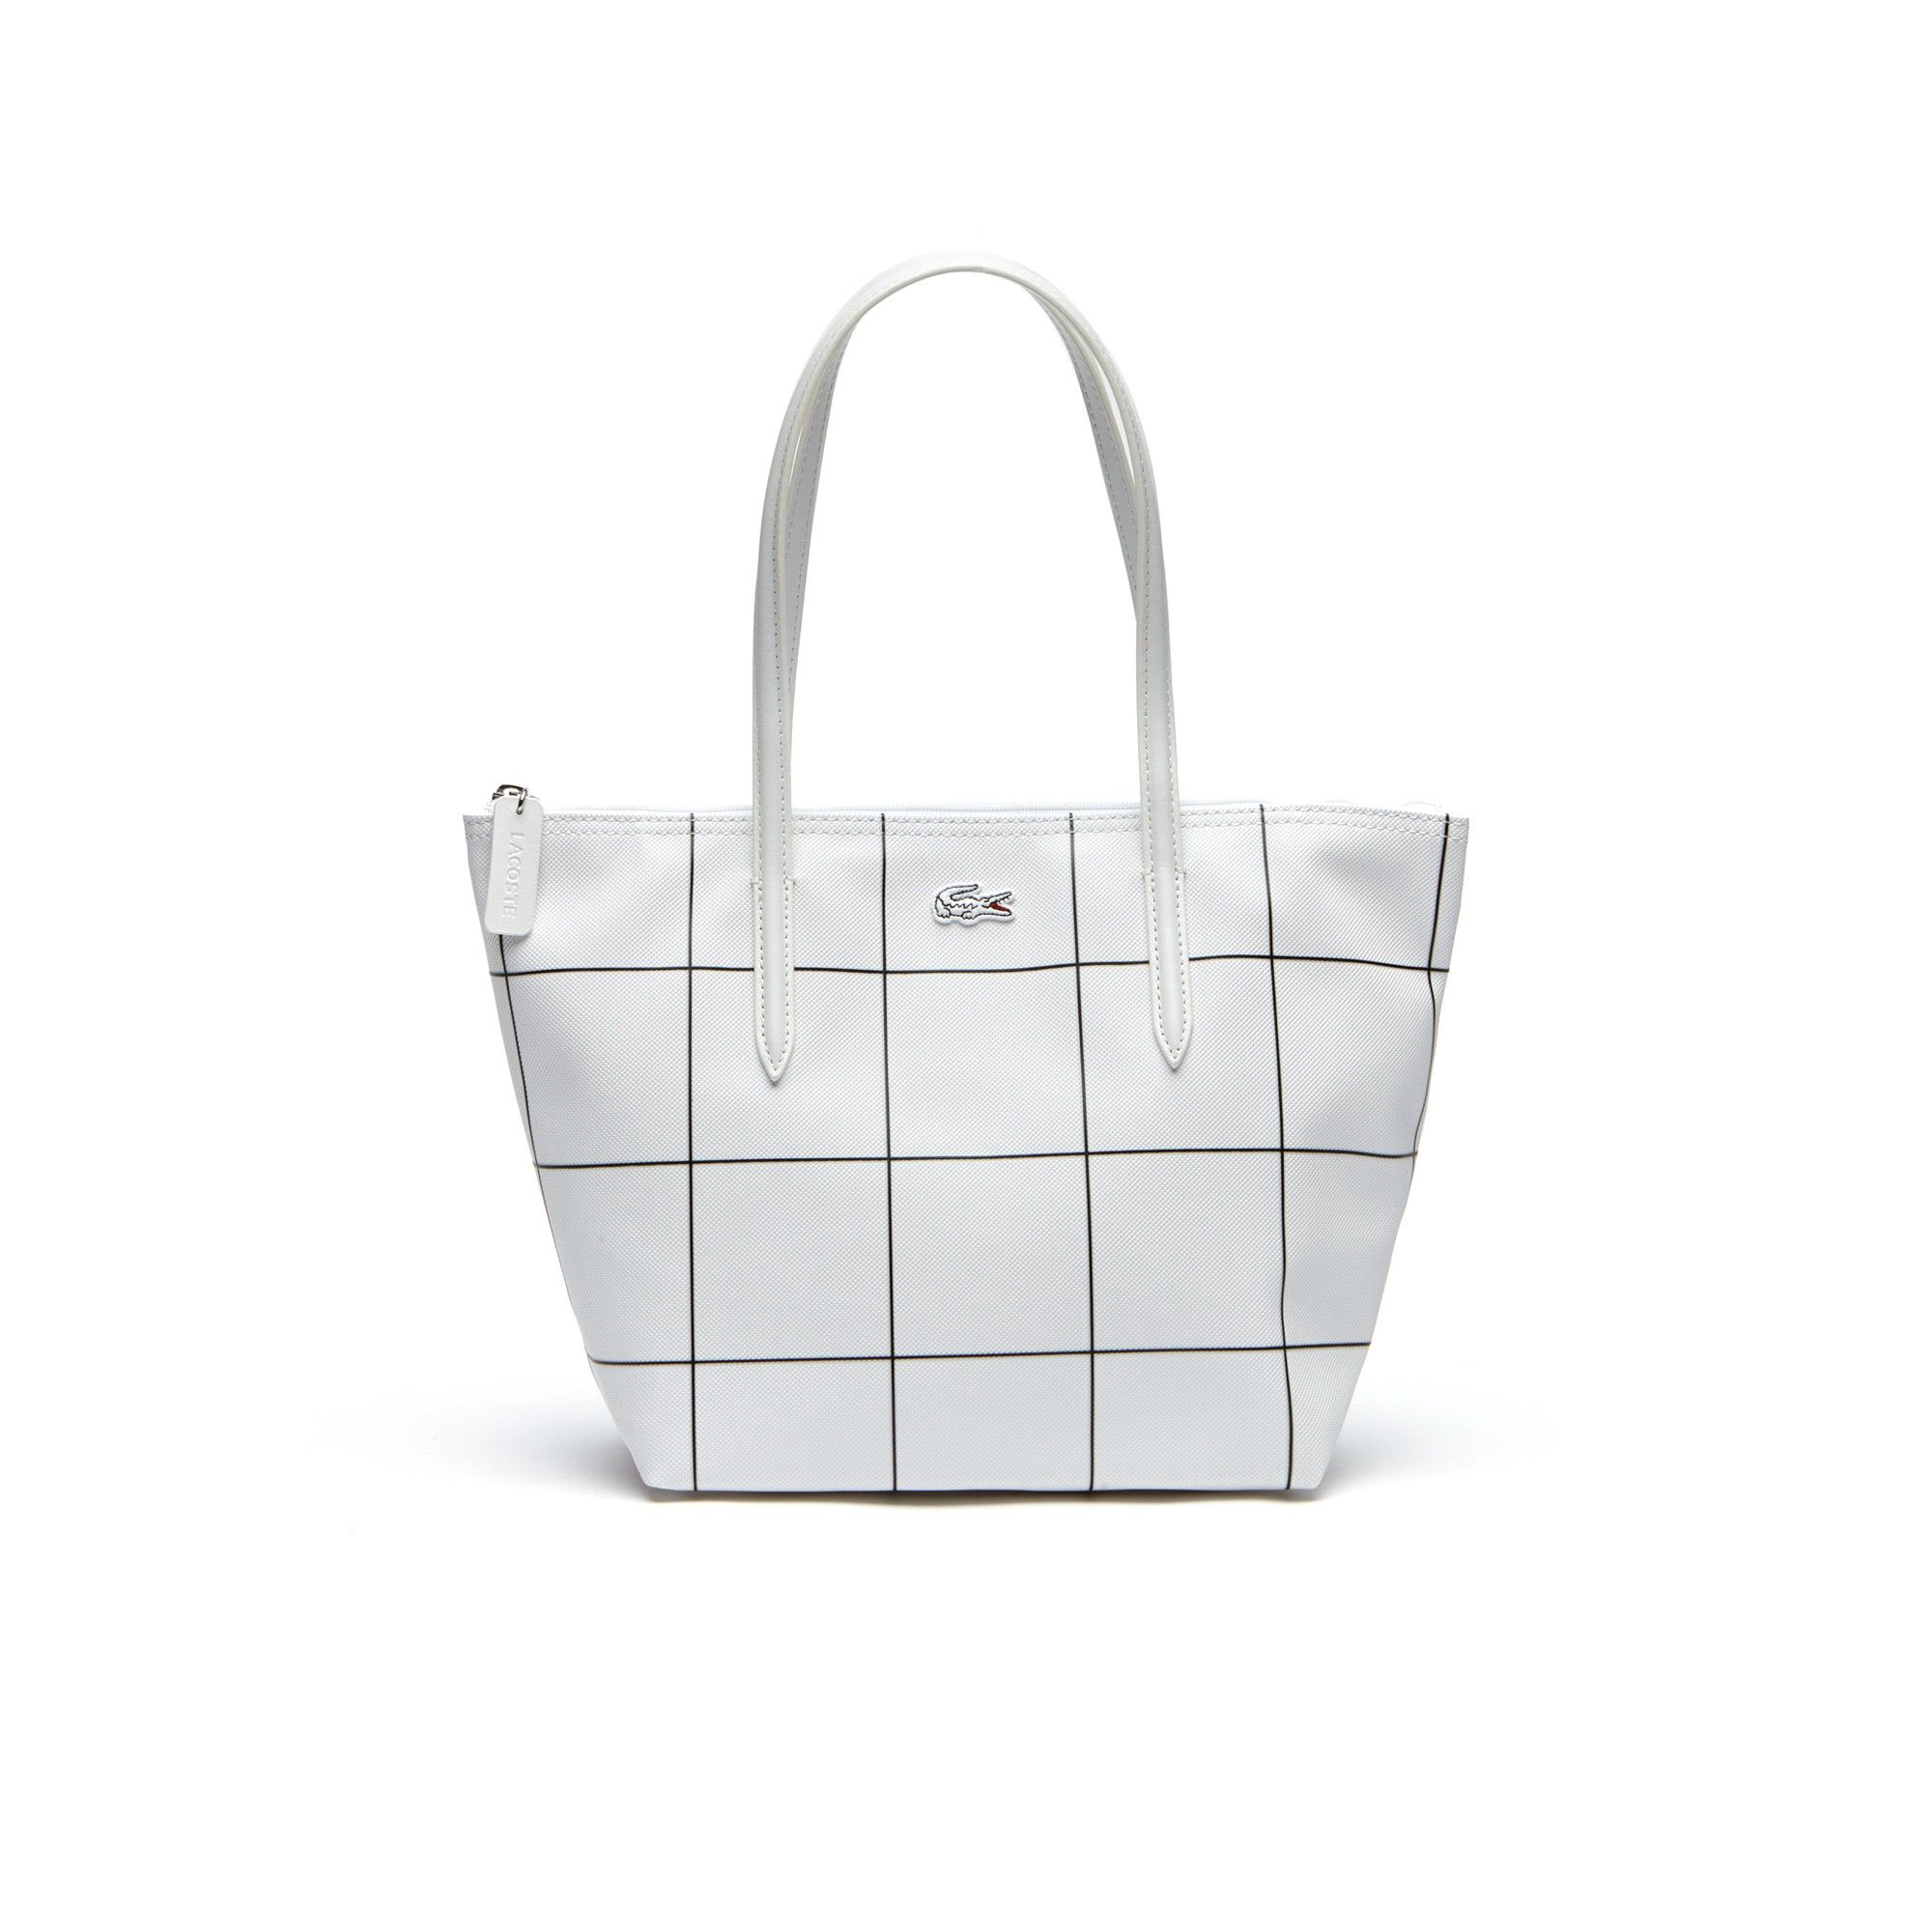 LACOSTE Women s L.12.12 Concept White Squares Small Zip Tote Bag.  lacoste   bags  hand bags  pvc  tote   2b74688db9c44